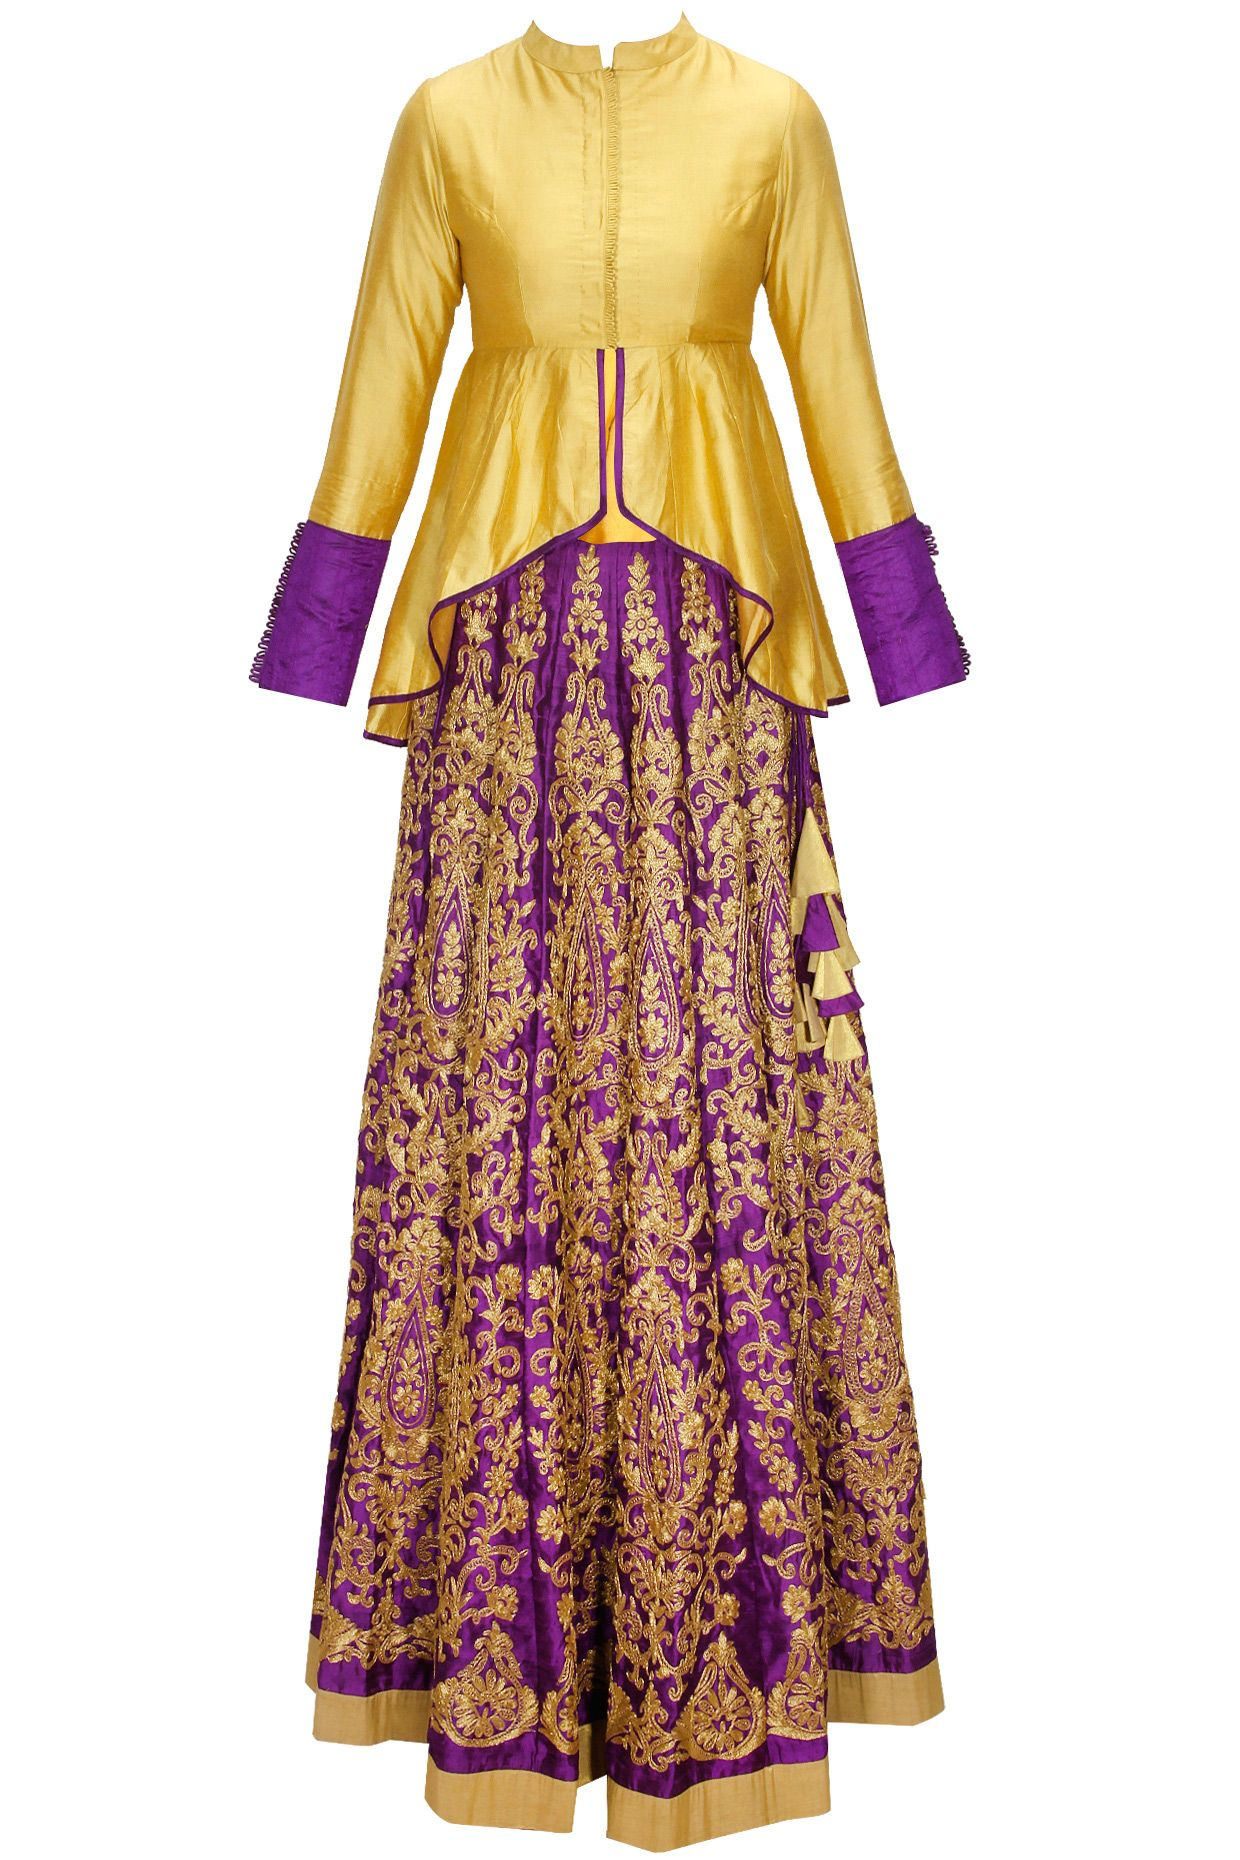 571c37f81c VASAVI SHAH Purple embroidered lehenga with gold short jacket available  only at Pernia's Pop-Up Shop.